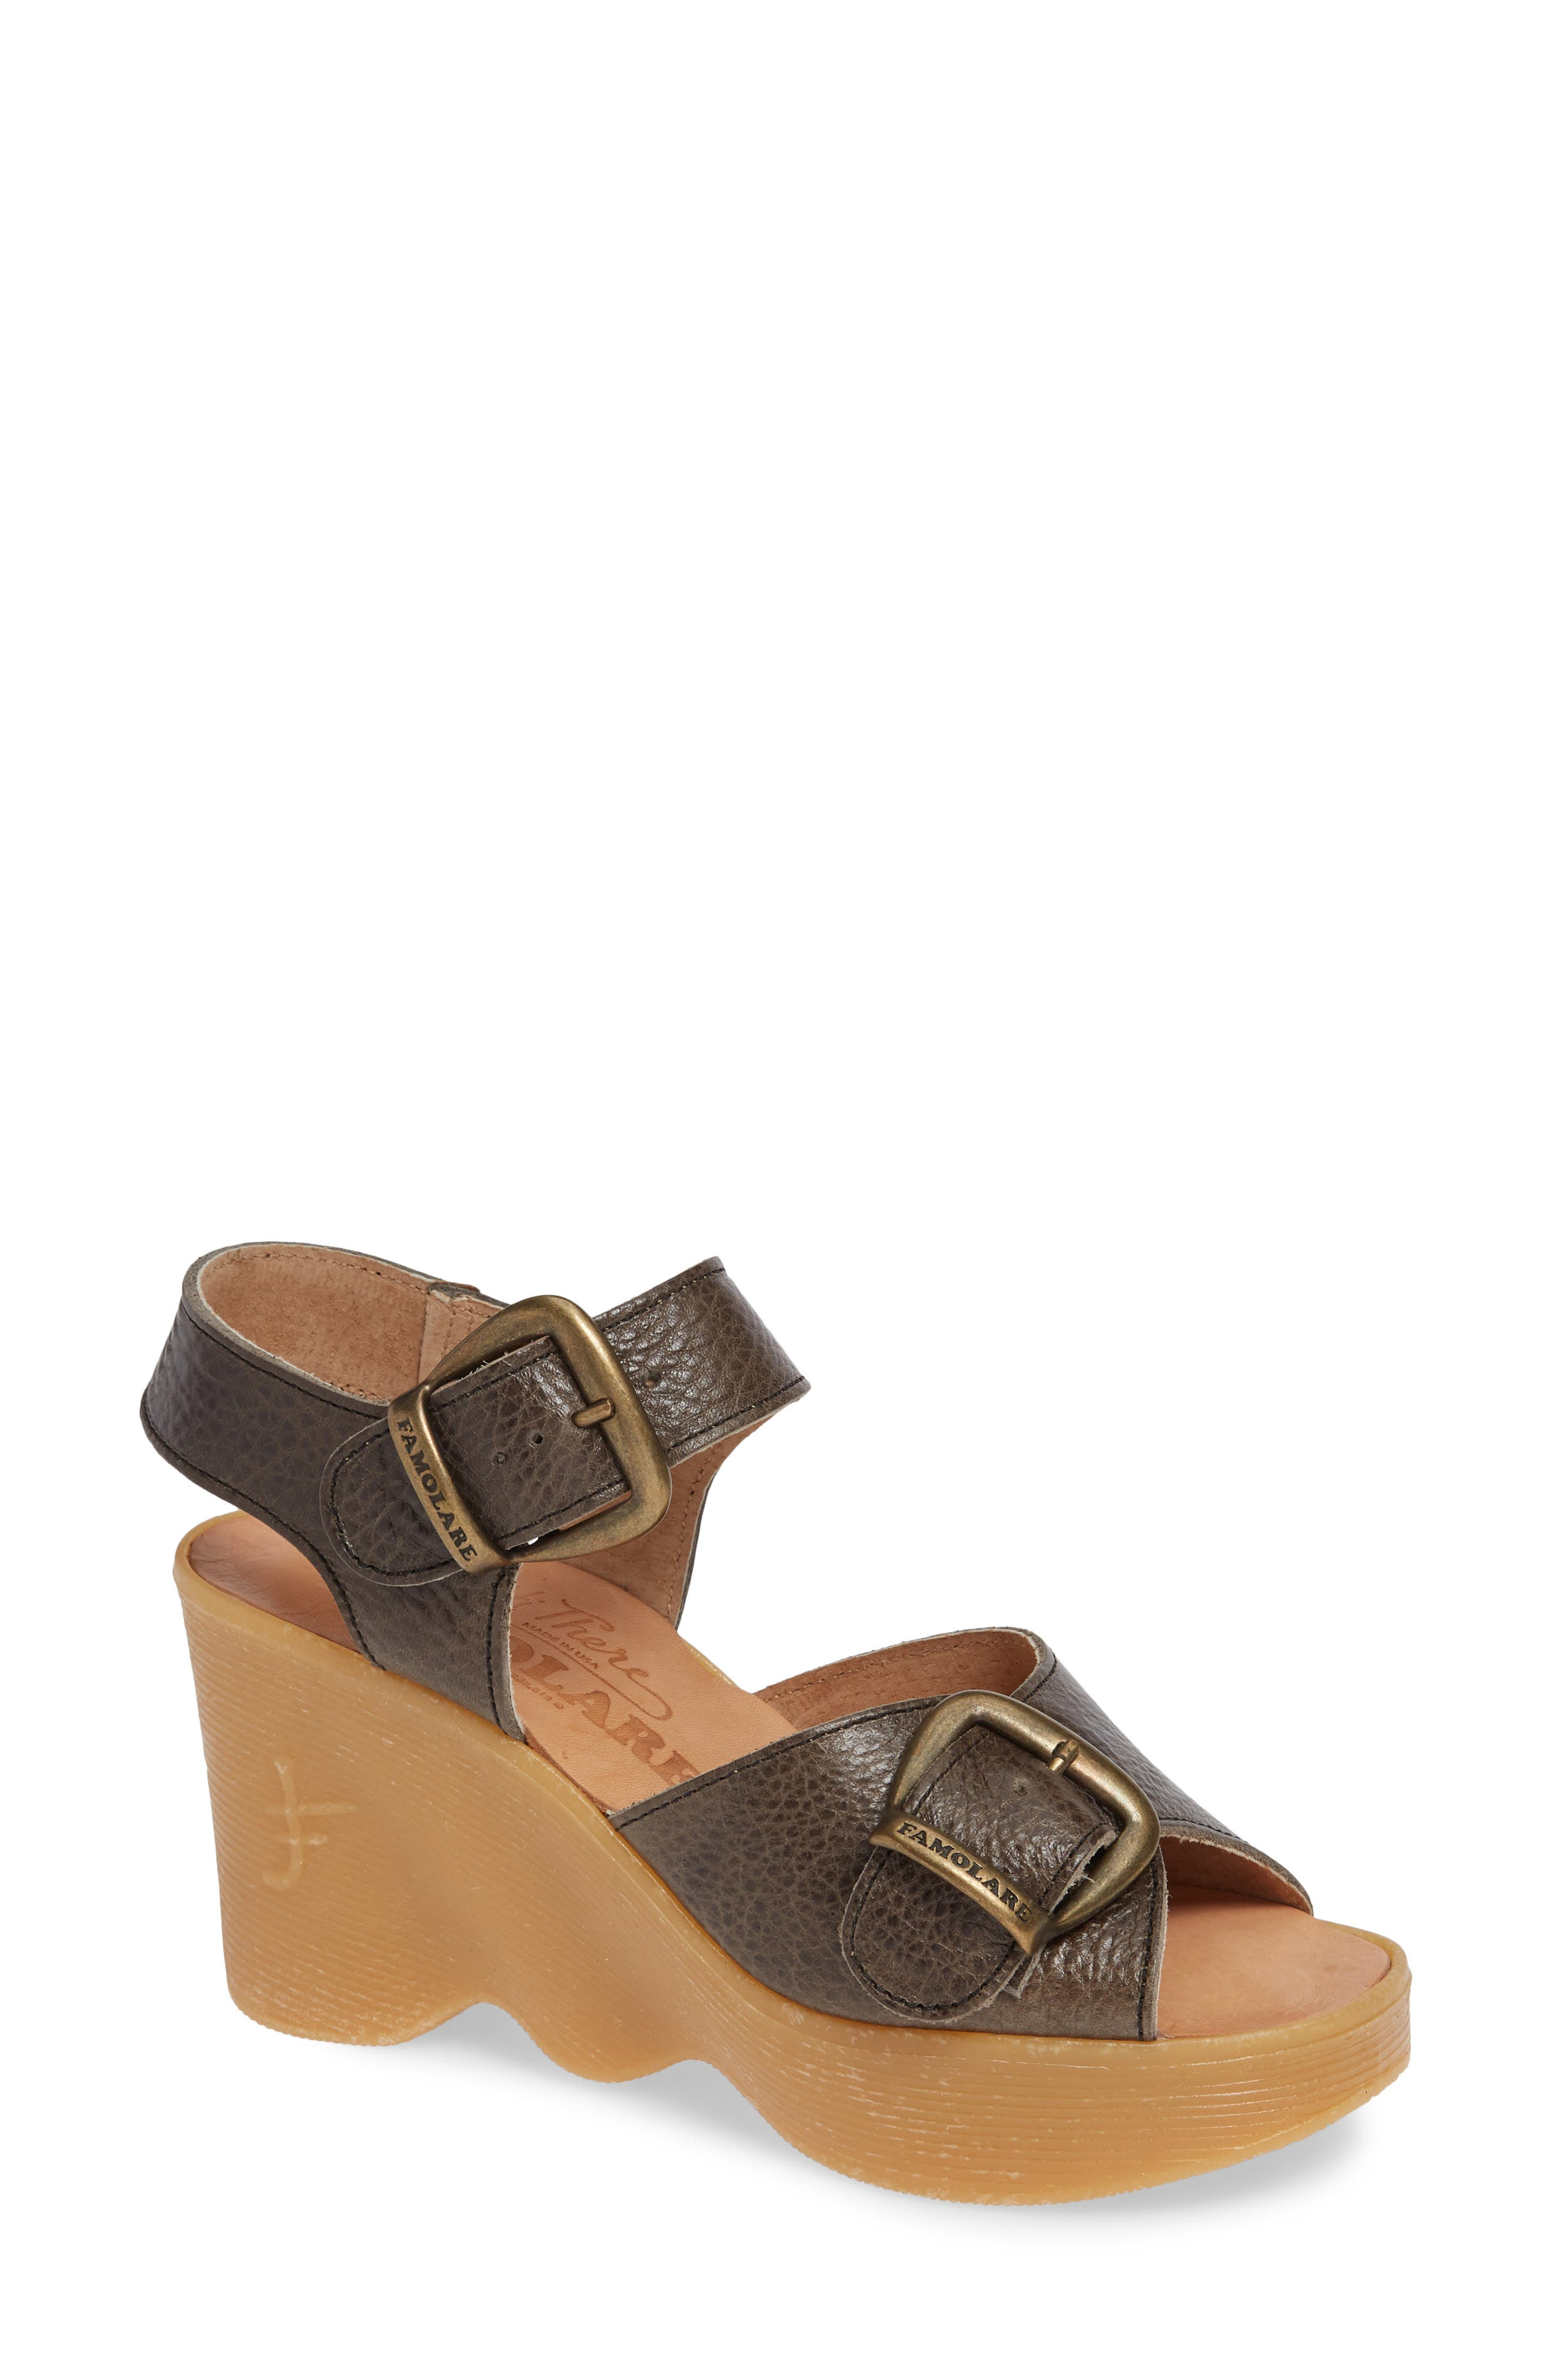 Double Vision Wedge Sandal,                             Main thumbnail 1, color,                             STEEL LEATHER